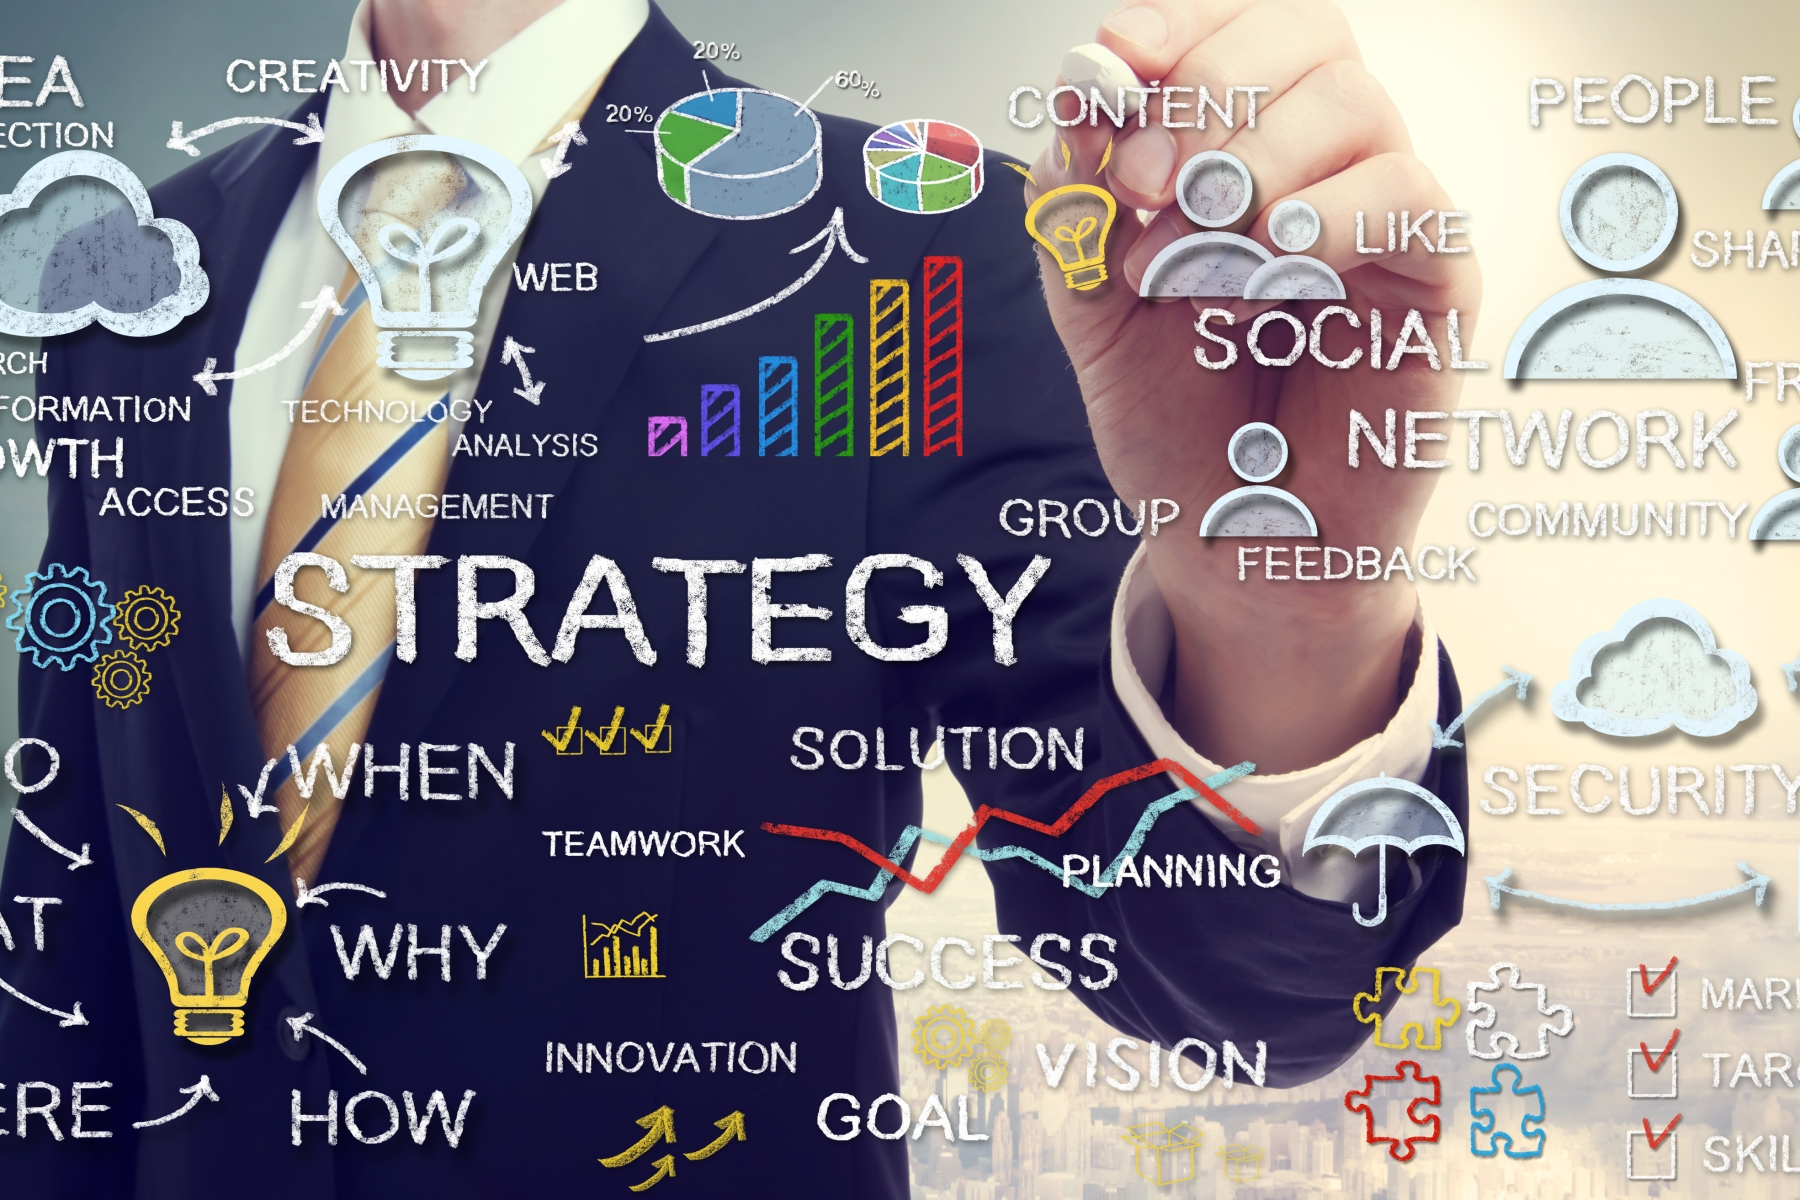 strategy execution, vision, people, collaboration